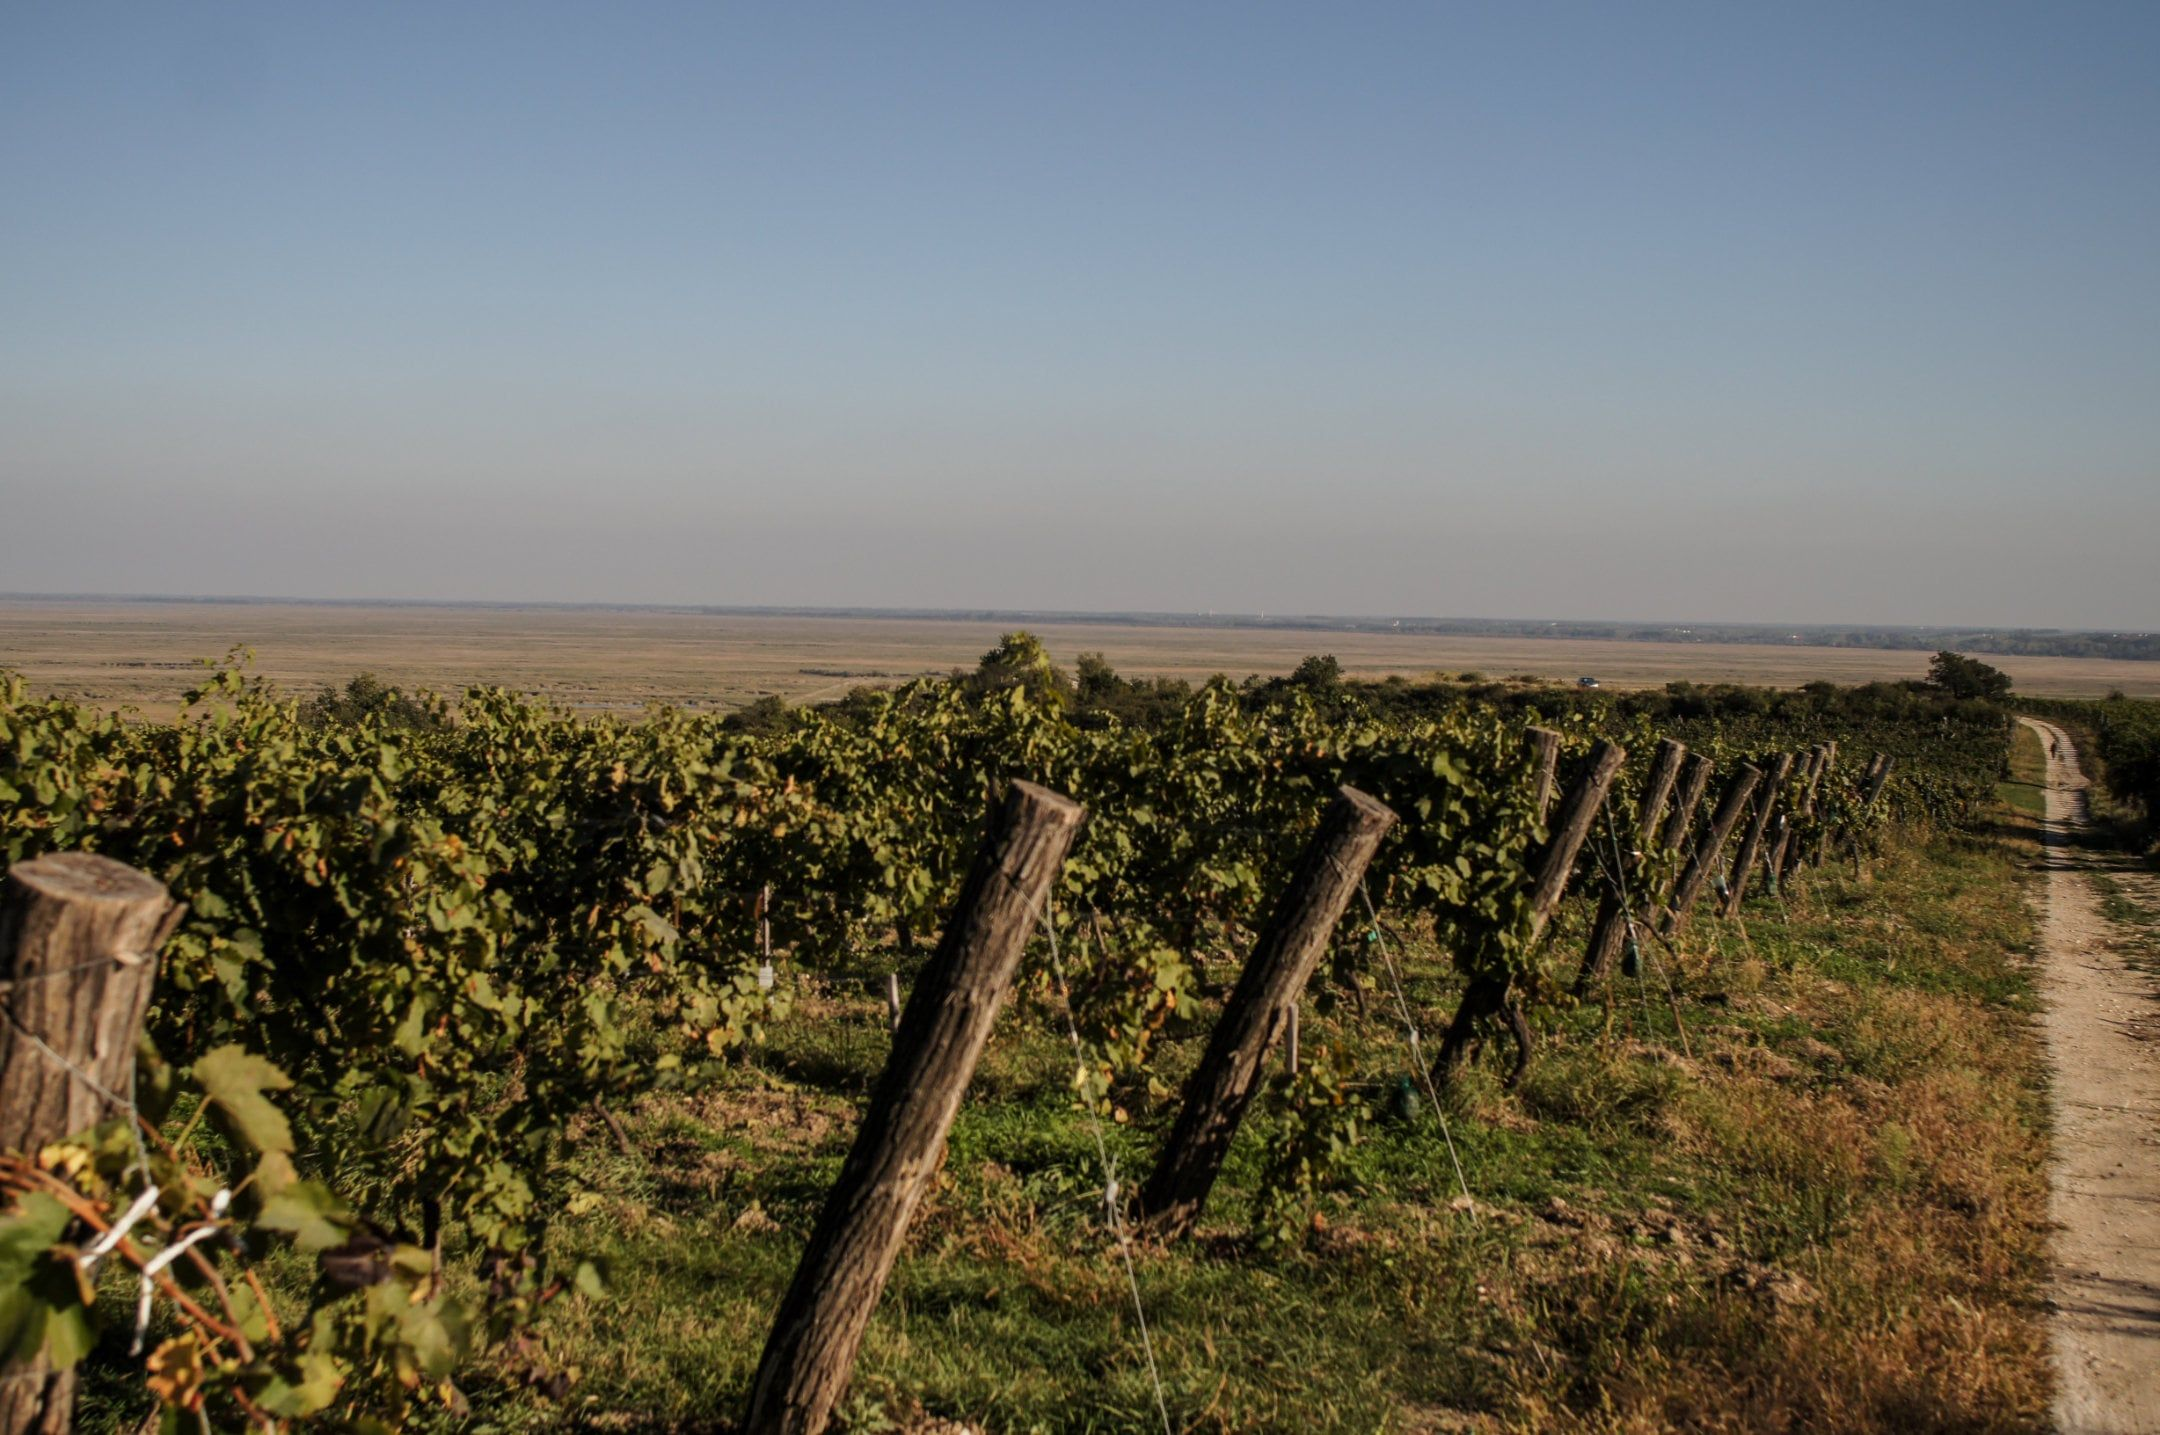 The Steiner vineyard in Sopron lies at the southwestern tip of Lake Neusiedl on a gentle, eastward-facing slope.